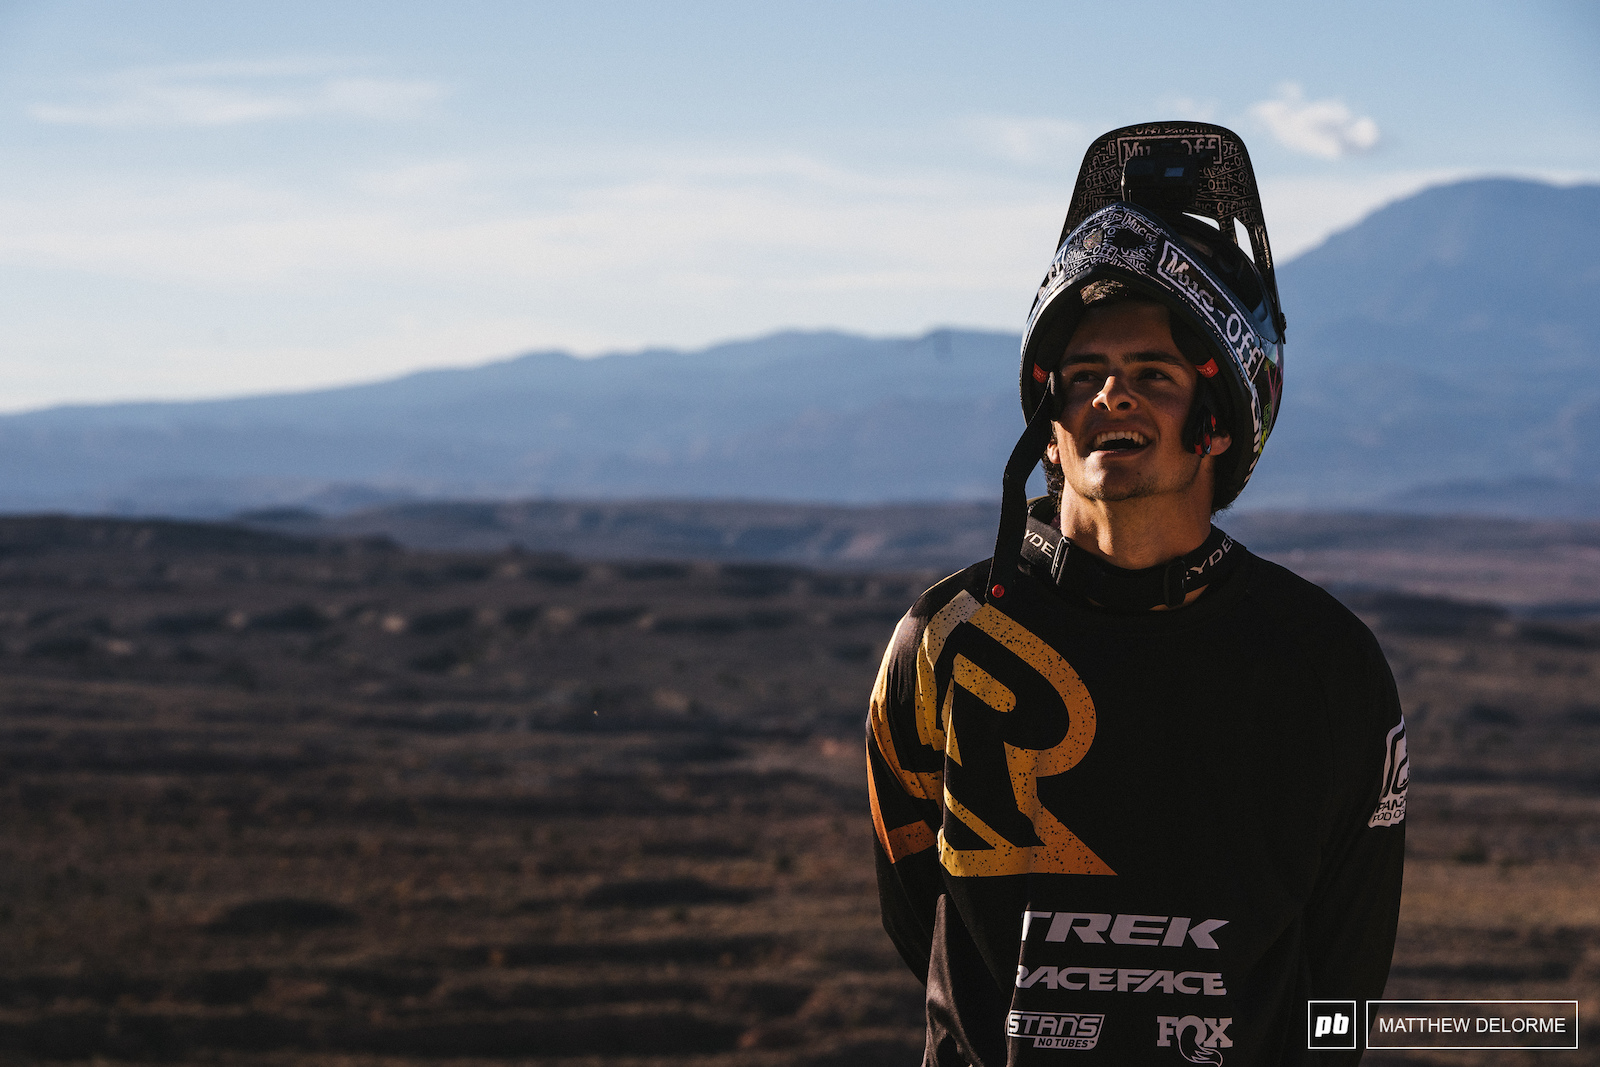 Reed Boggs is stoked to get riding after a long week of digging.